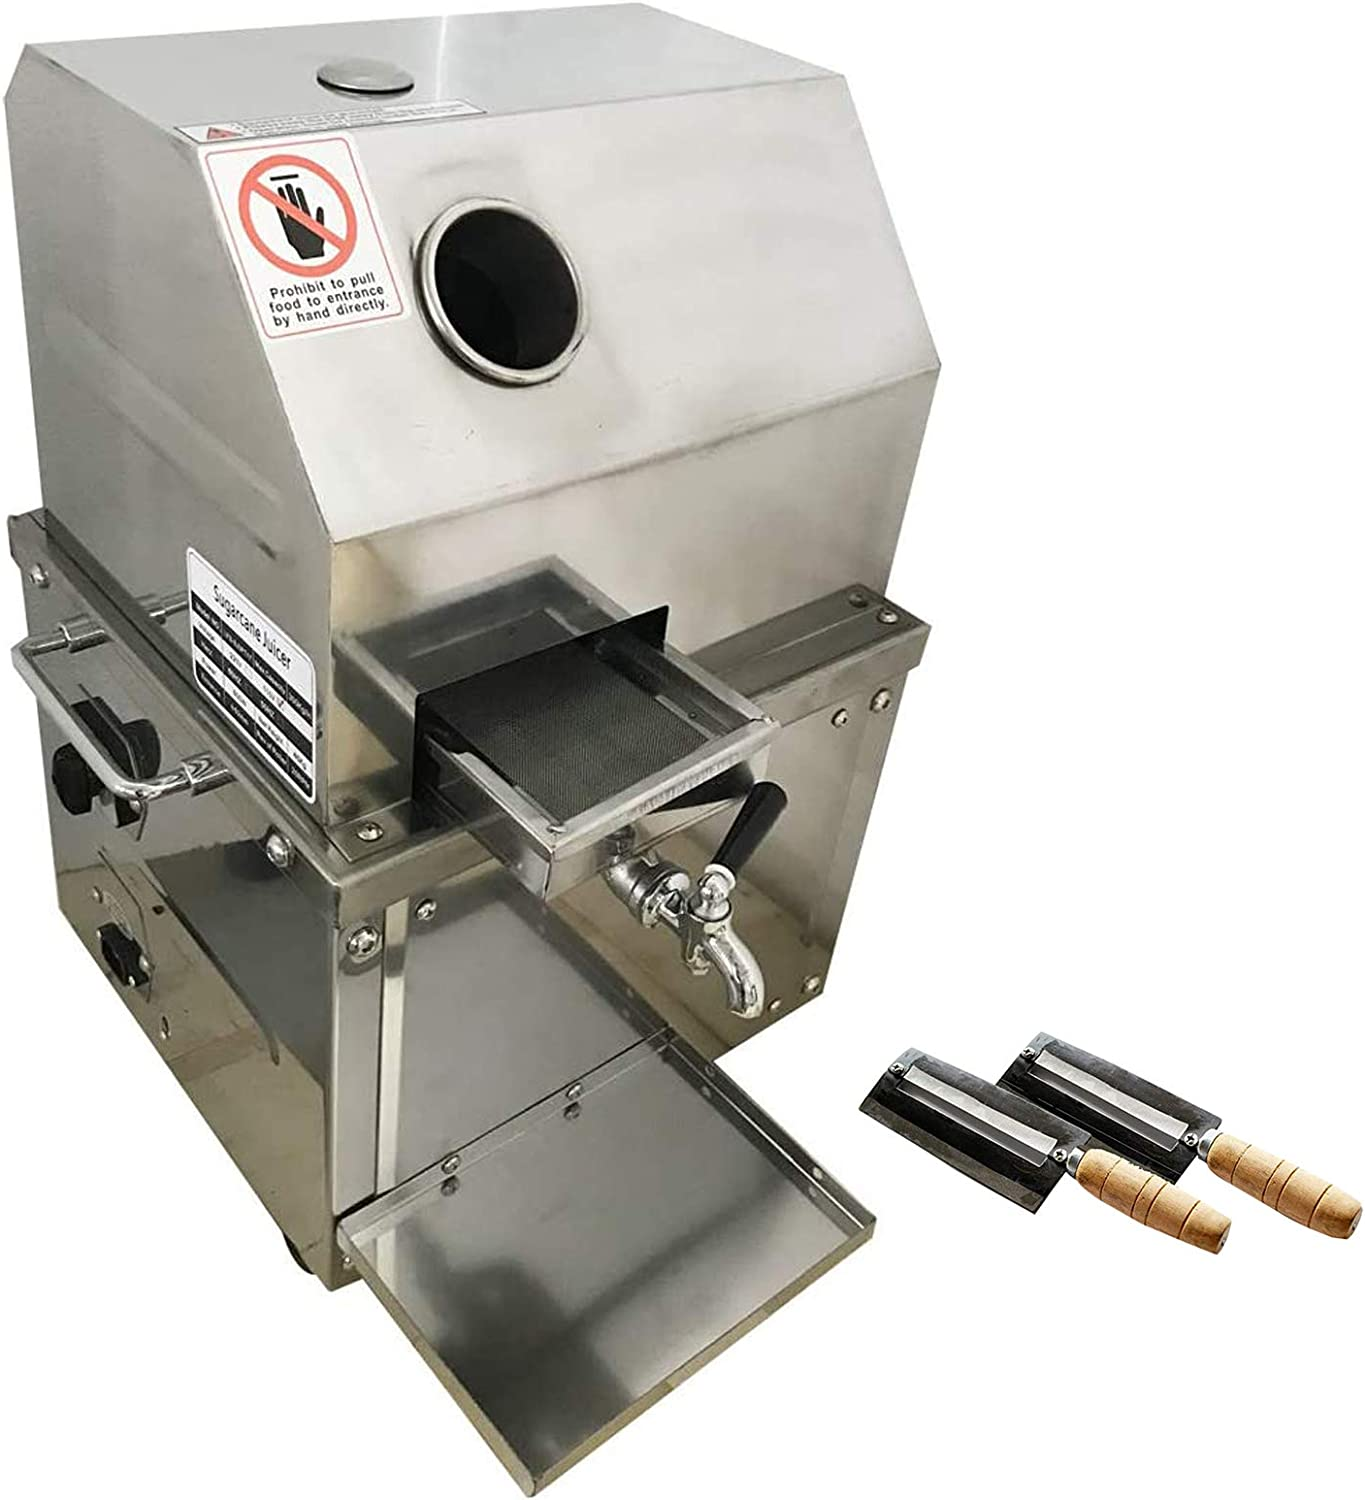 INTBUYING Electric Sugar Cane Juicer Machine Commercial Sugarcane Press Extractor with 3 Rollers Stainless Steel including 2pcs Knives